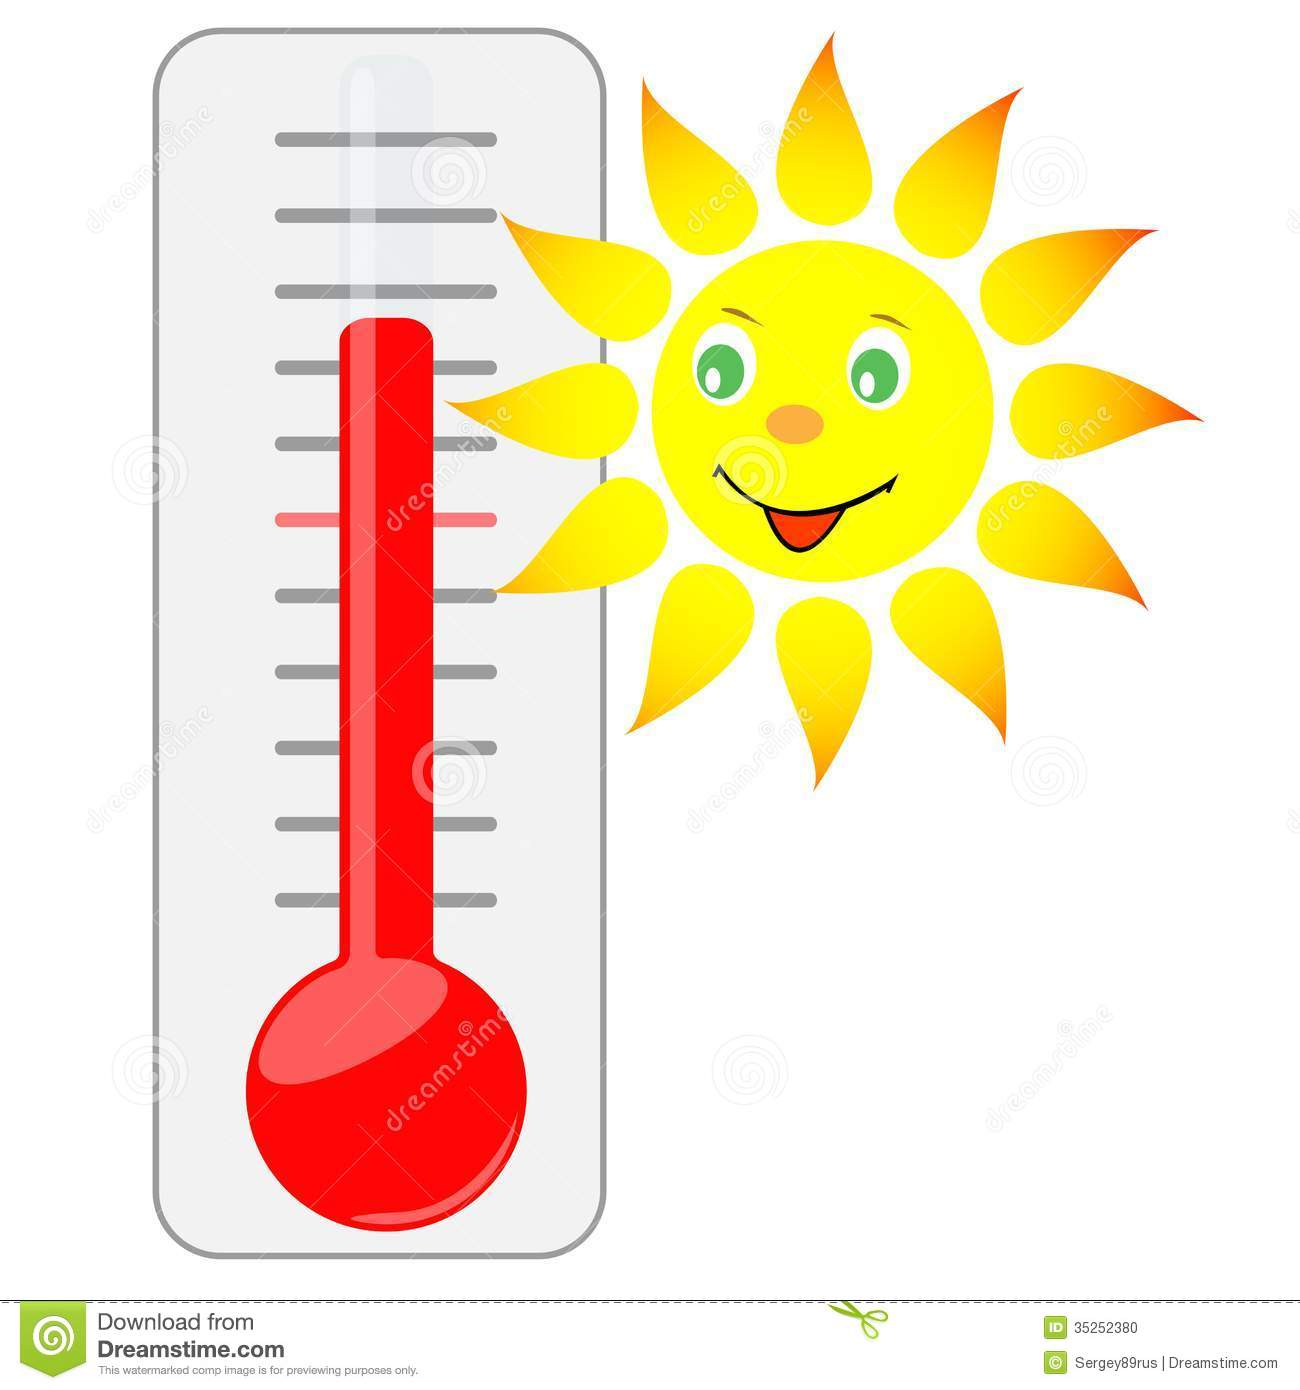 Celsius Thermometer Png The sun of thermometer...